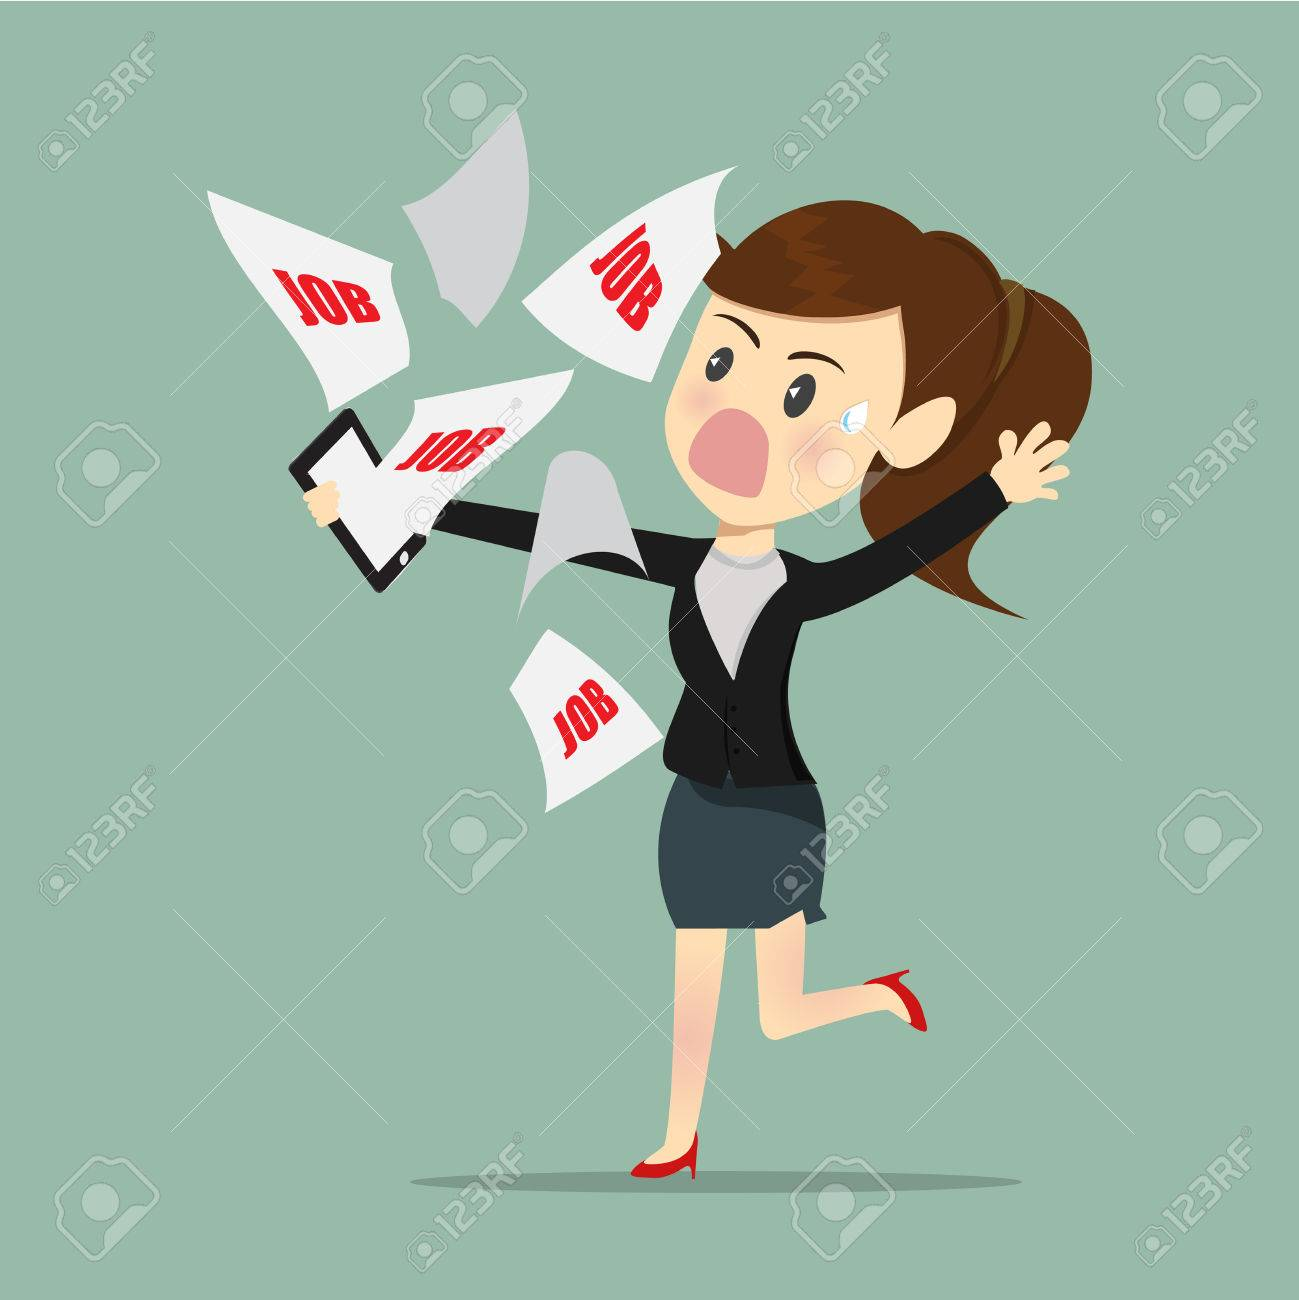 Business women busy and tried with e-mail work a receive from boss. - 63549053